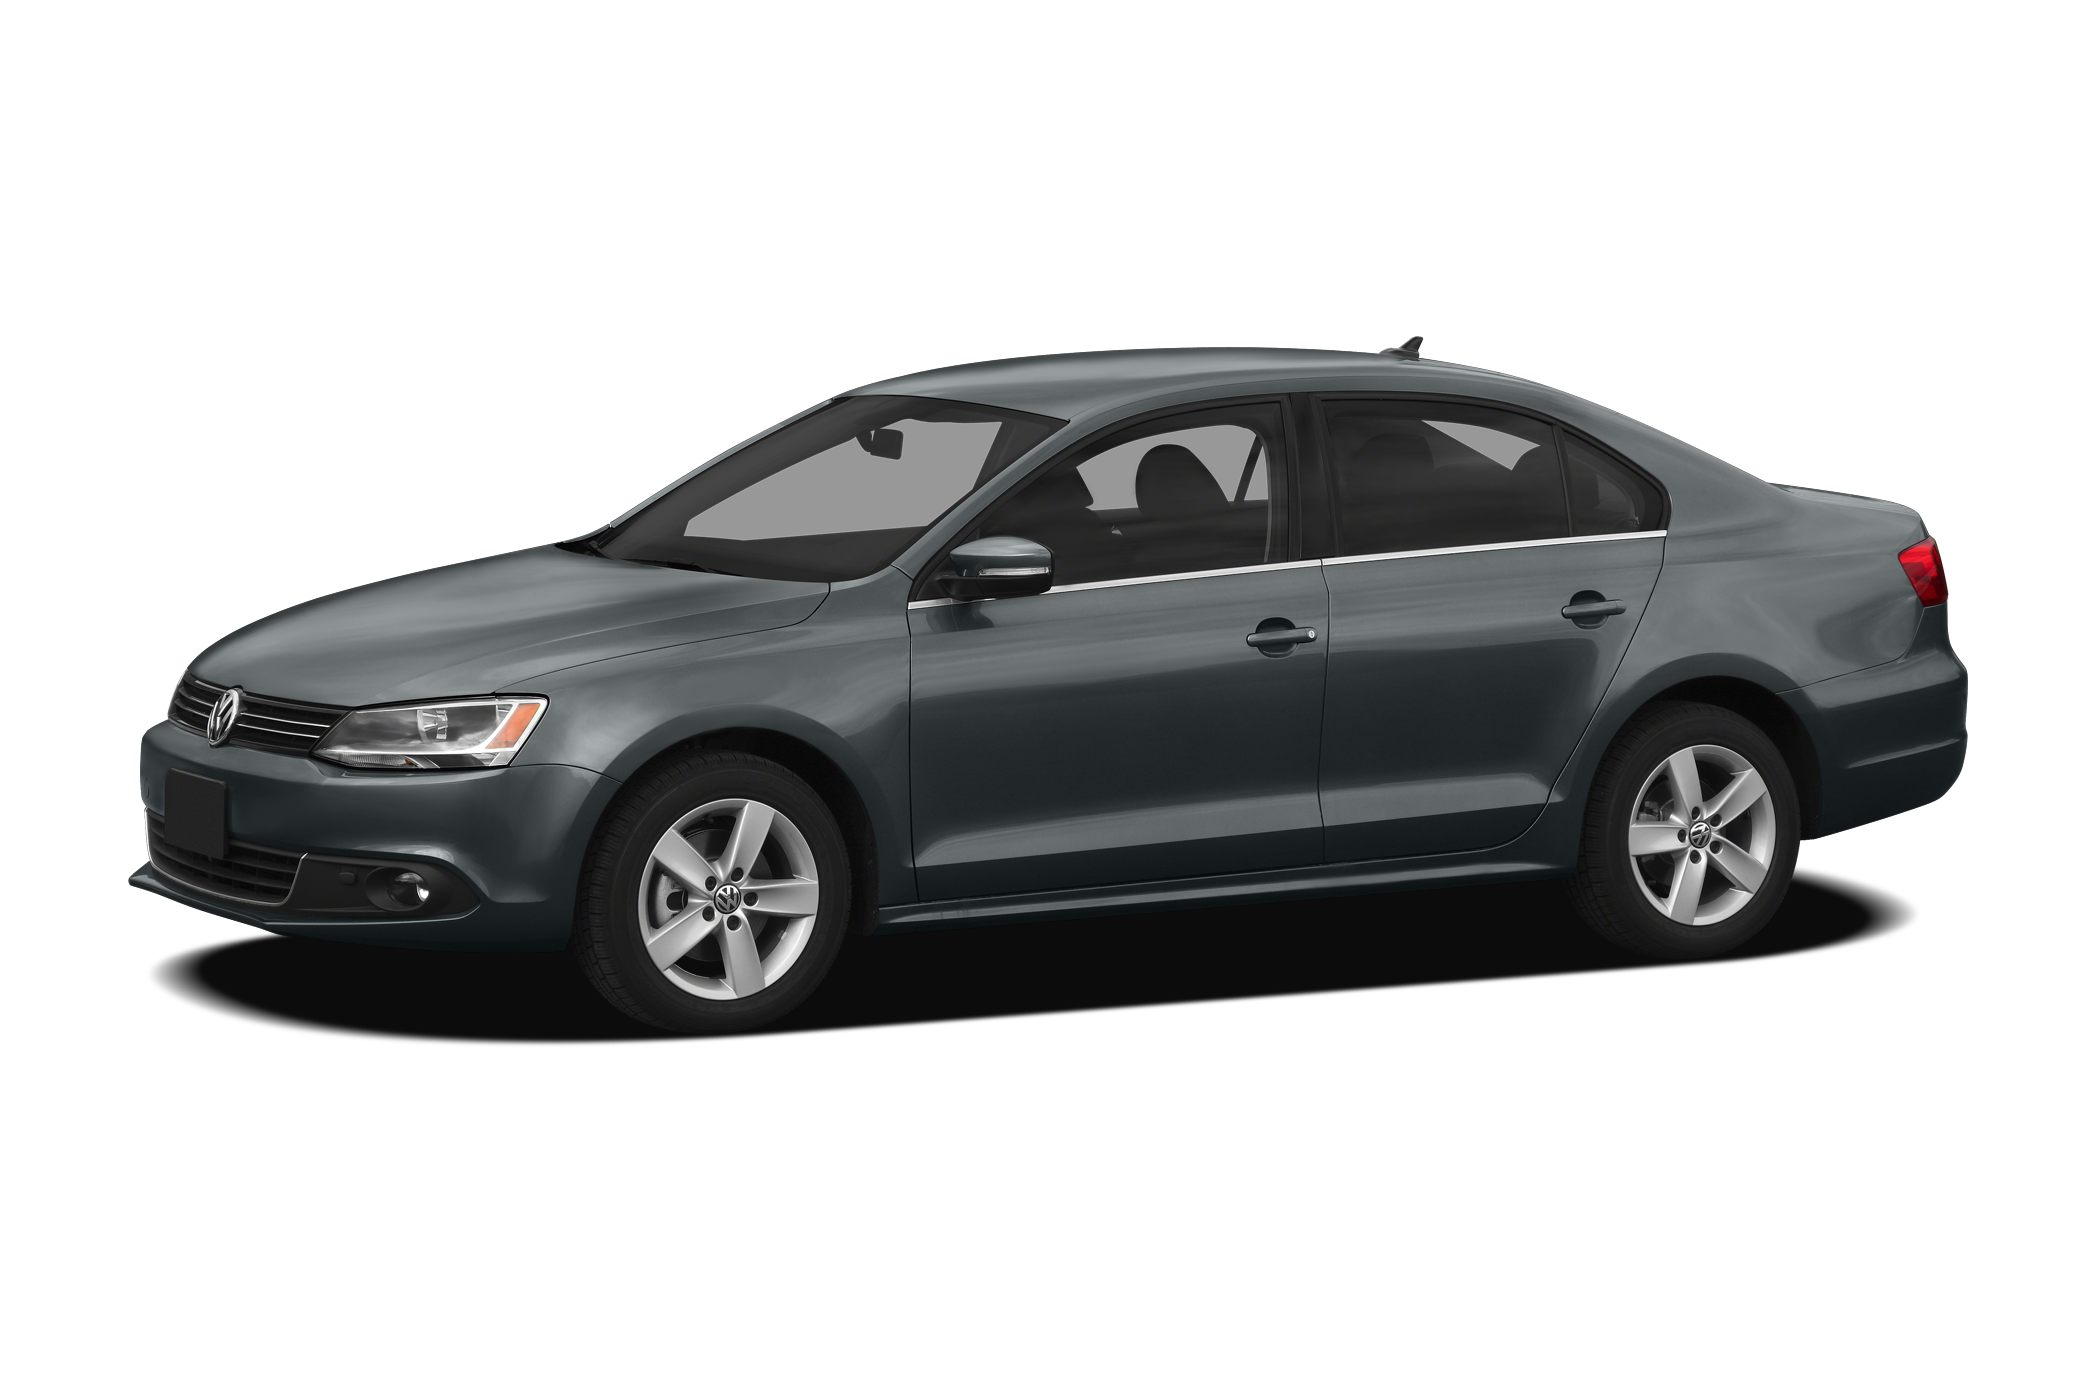 2012 Volkswagen Jetta SE Sedan for sale in Spartanburg for $13,500 with 35,445 miles.